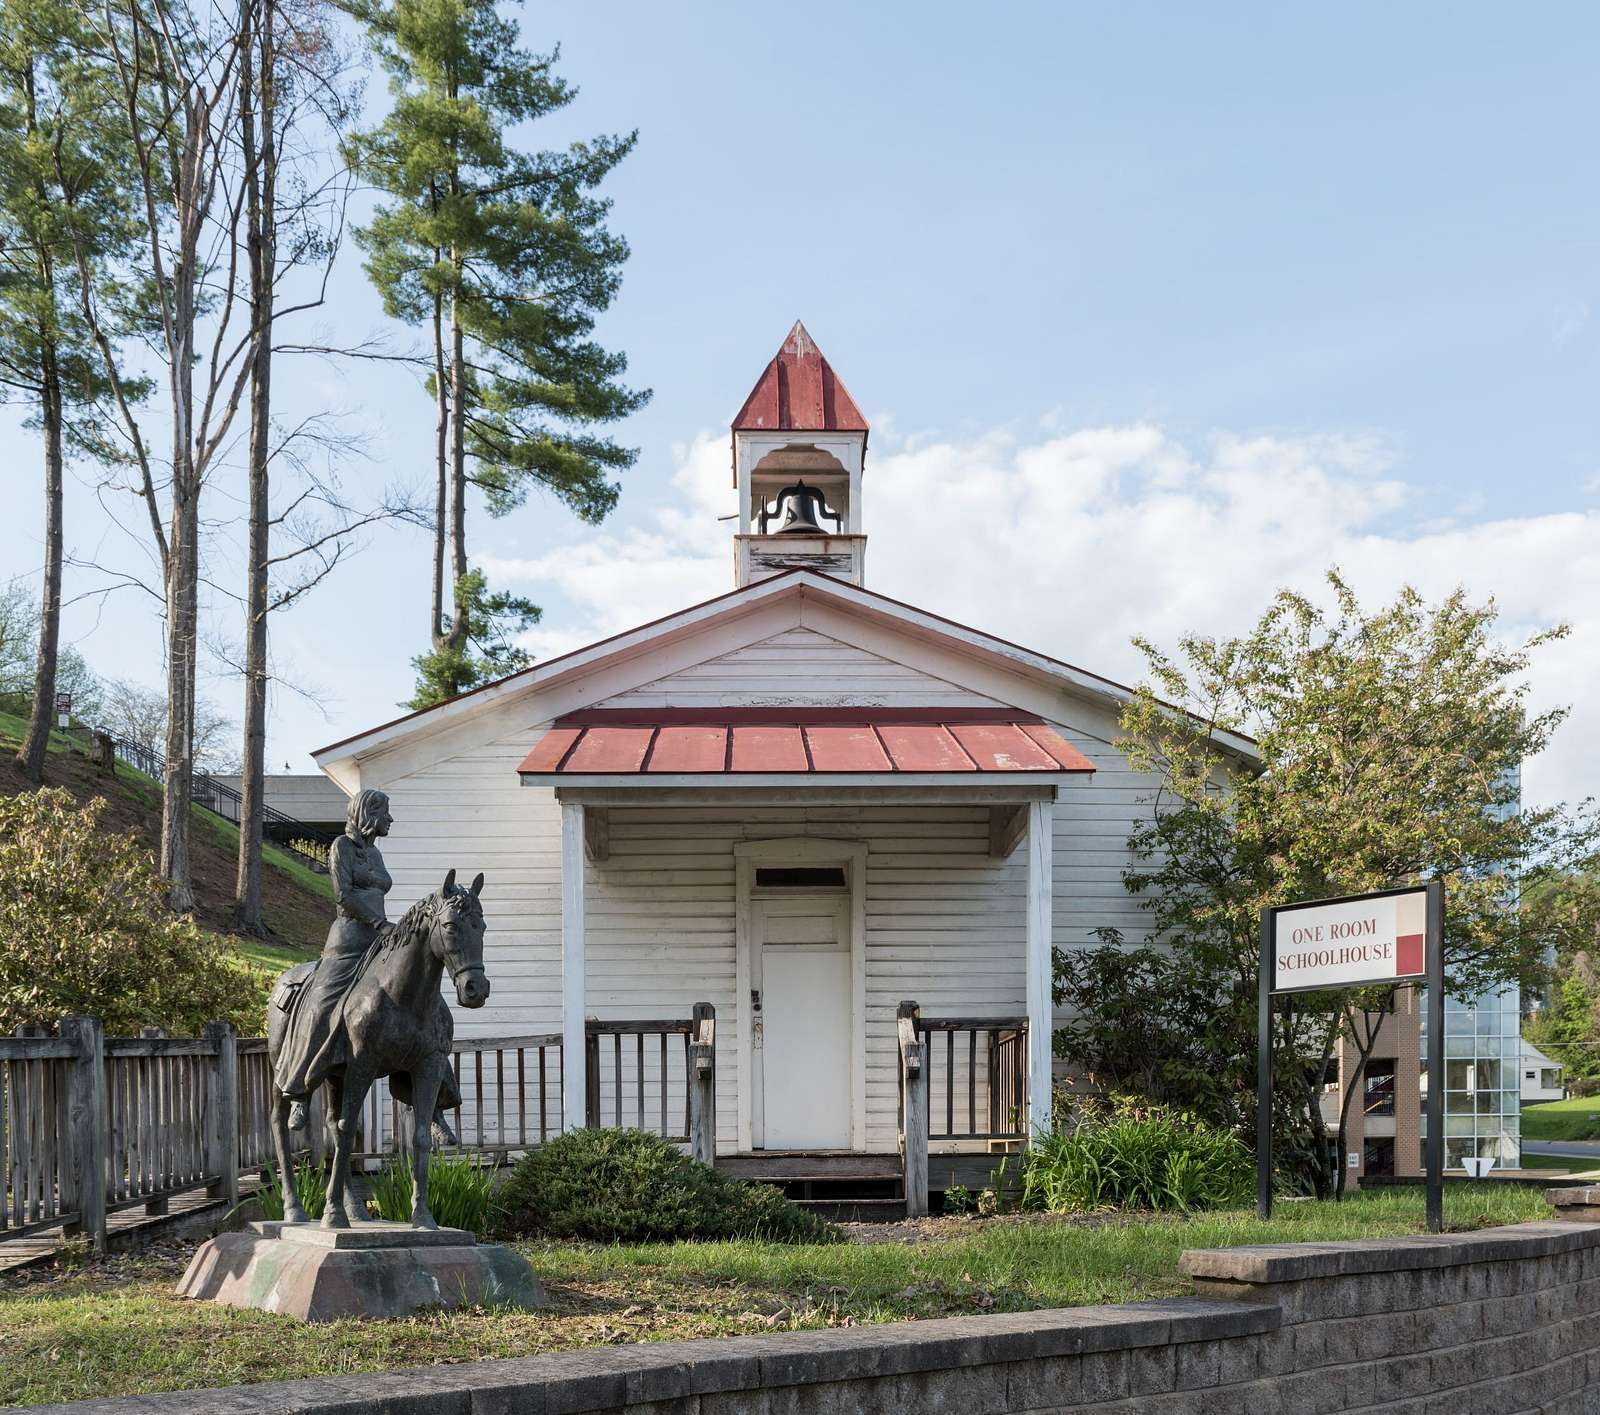 The Snodgrass One-Room Schoolhouse on the campus of Fairmont State University in Fairmont, West Virginia